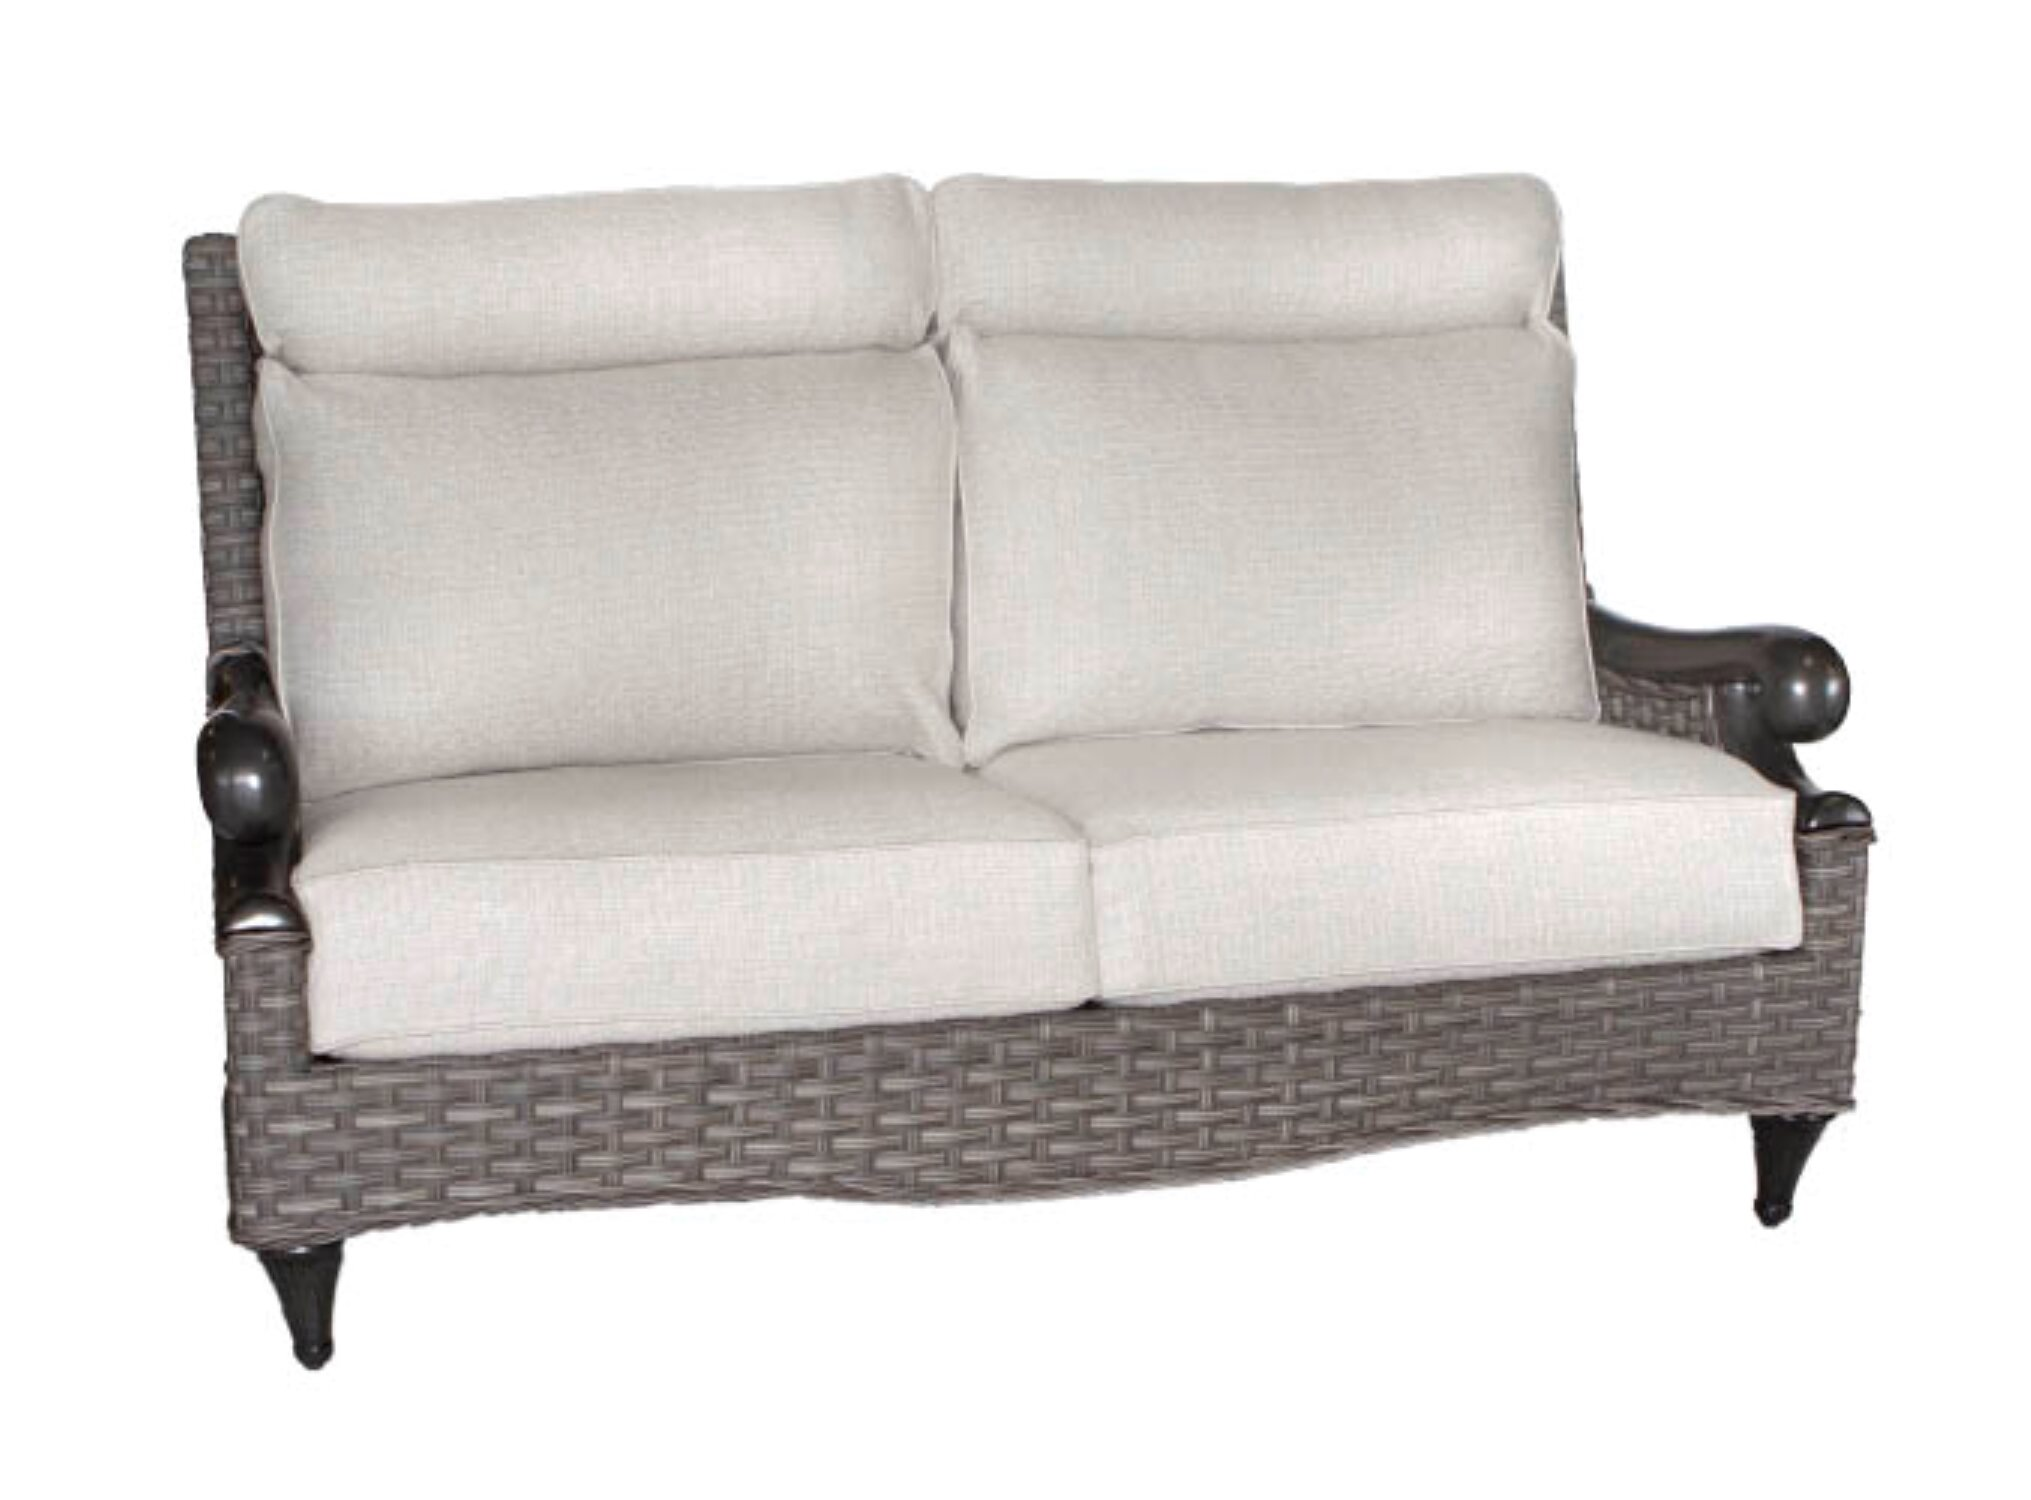 Outdoor Patio Couch Set, Canora Grey Guidi High Back Deep Seating Loveseat With Sunbrella Cushions Wayfair